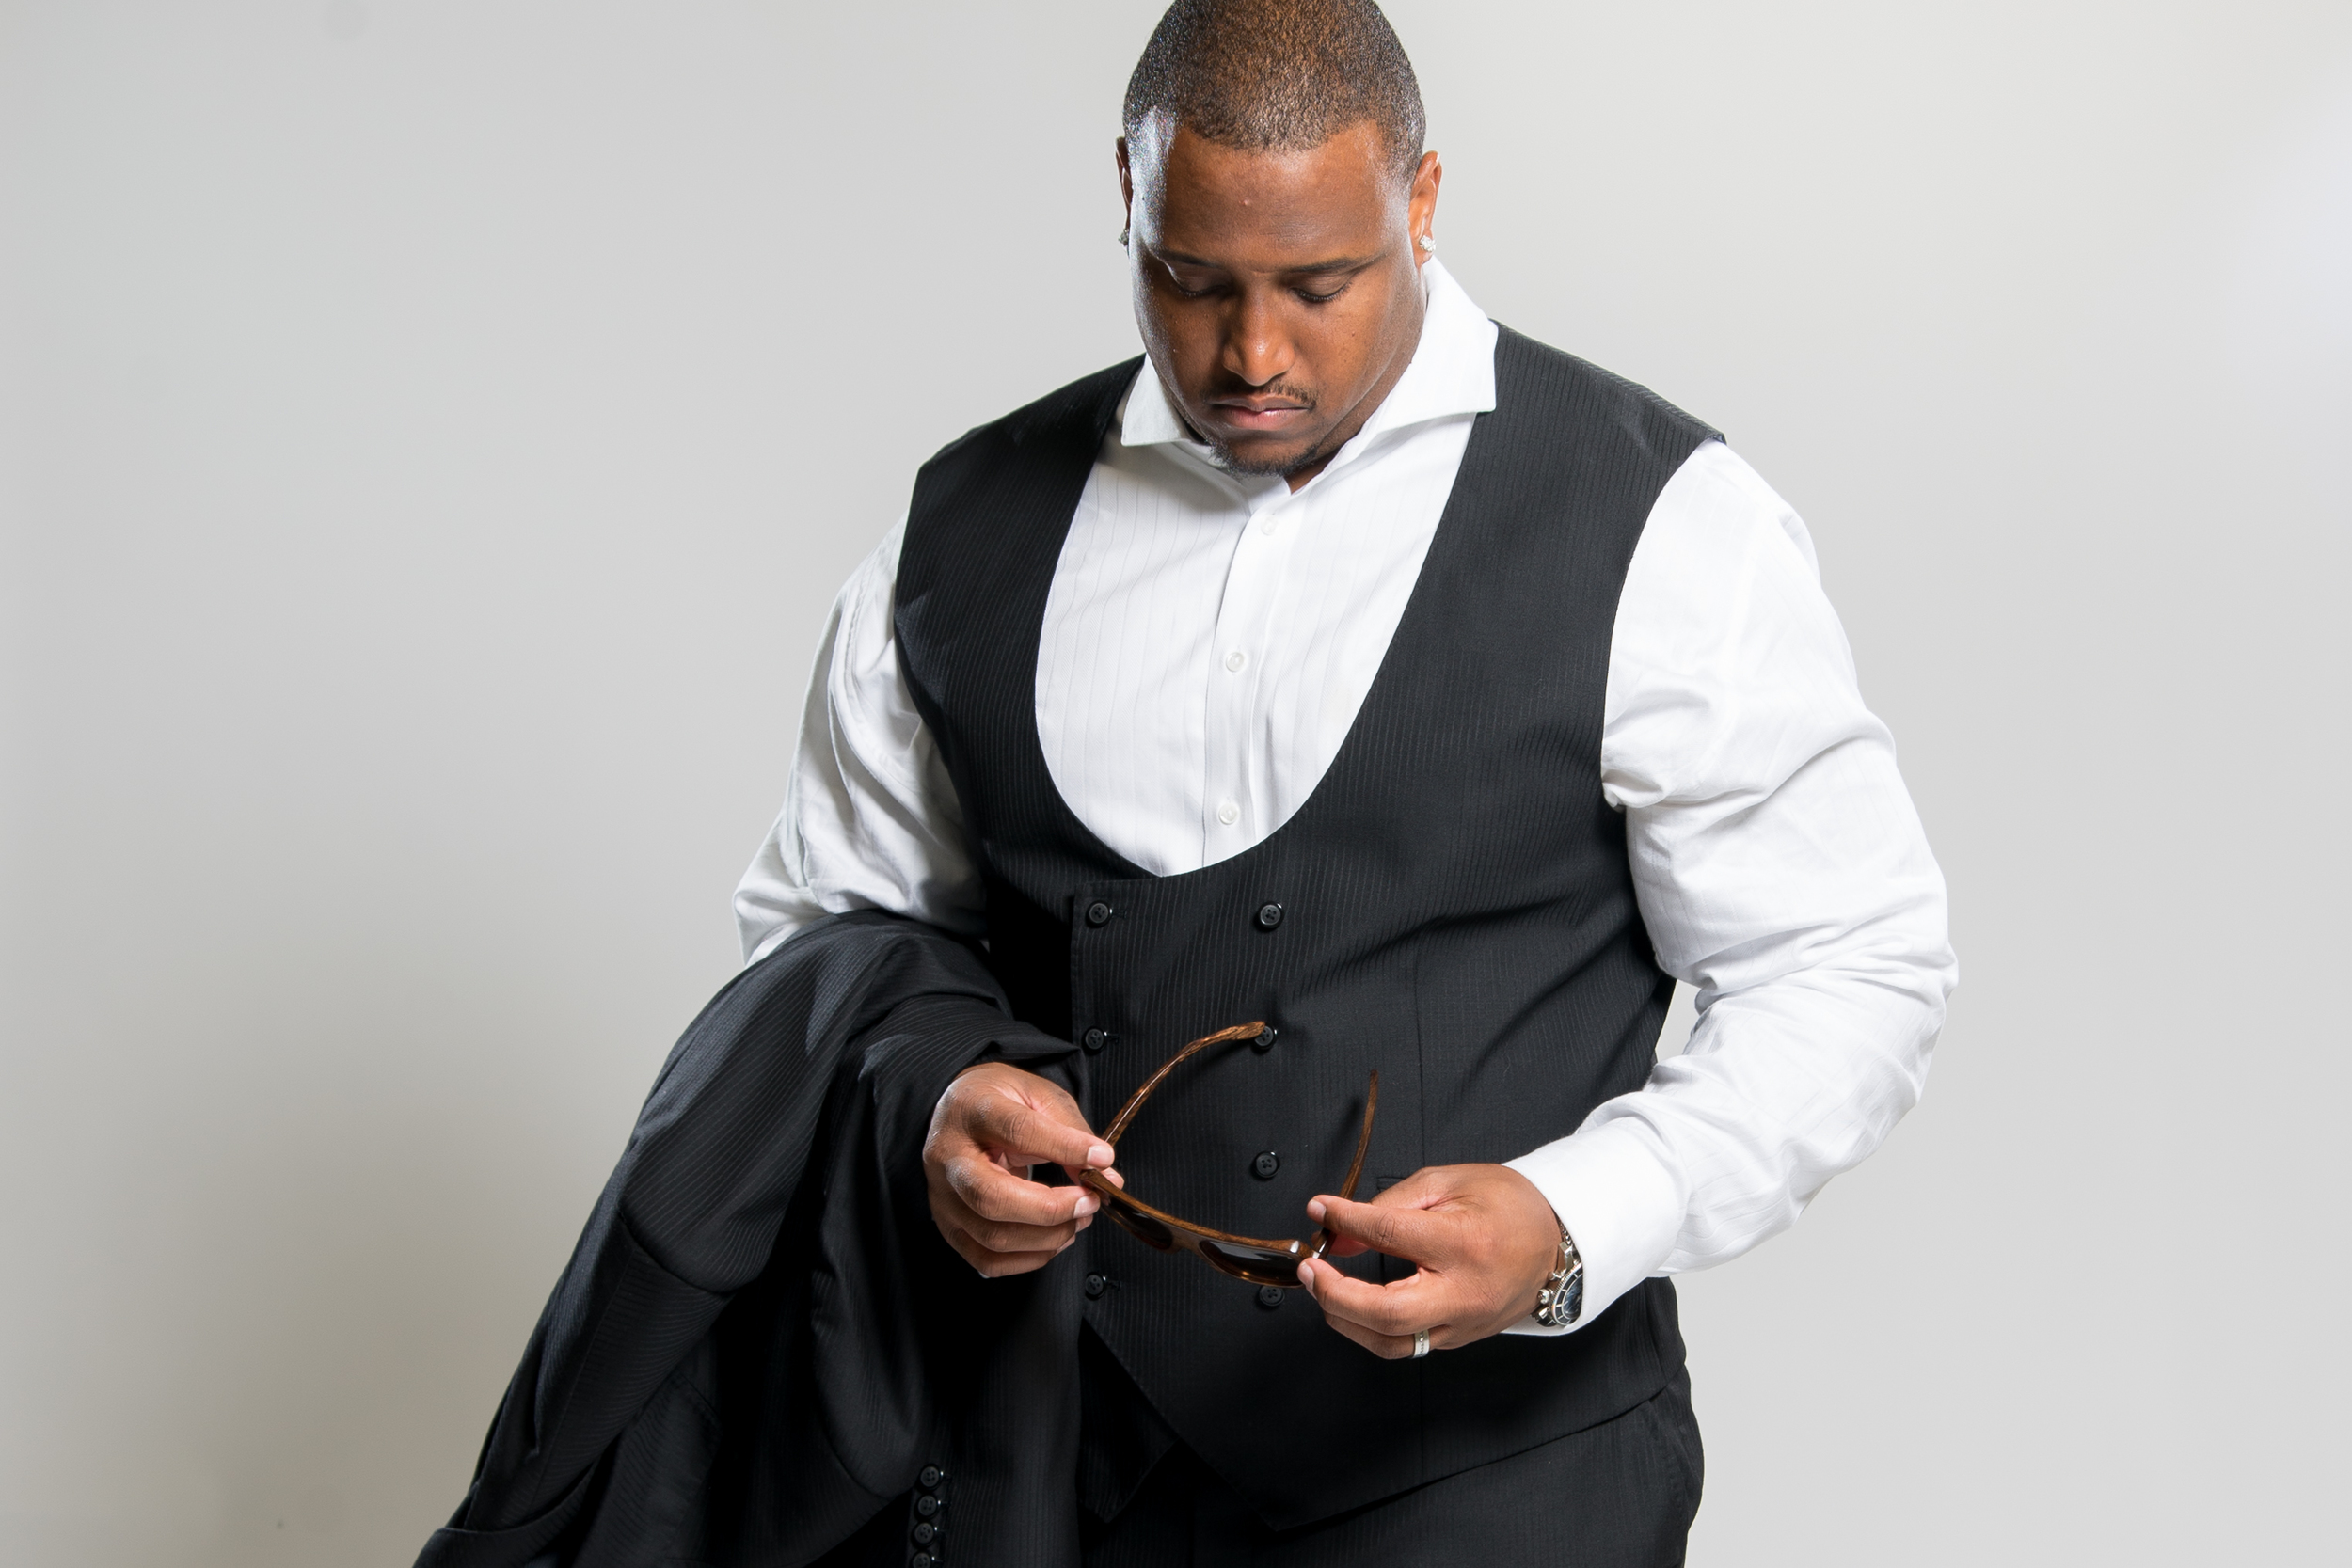 NFL Star Rob Sims Wearing William Malcolm Luxe Collection Bespoke Suit.  Detroit Bespoke Suits. Custom Suits Detroit